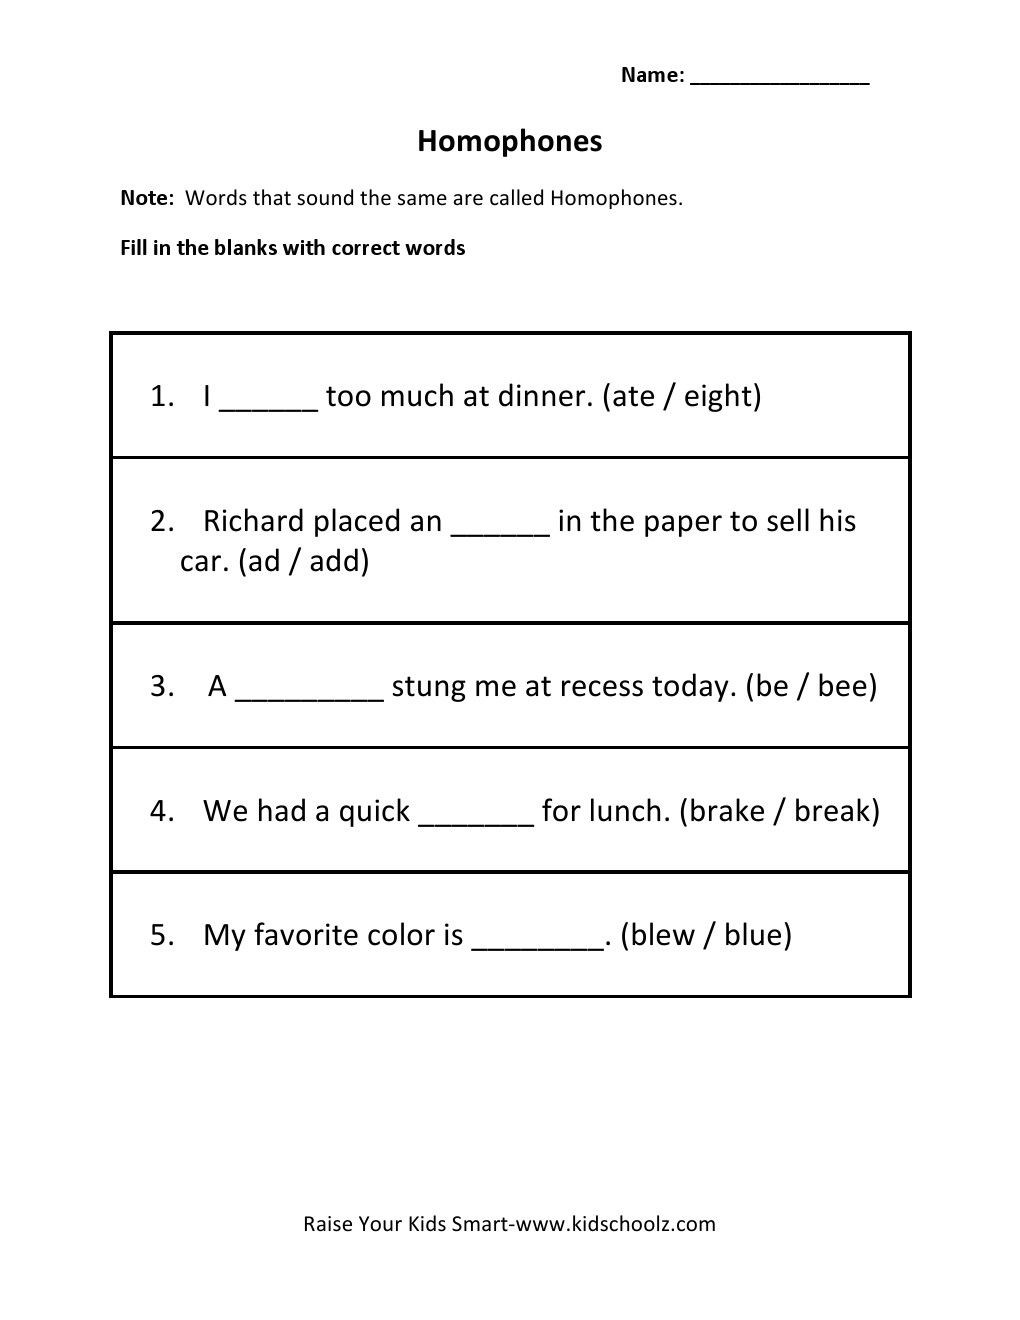 Homophone Worksheets Middle School Wp Content 2014 09 Homophones 1